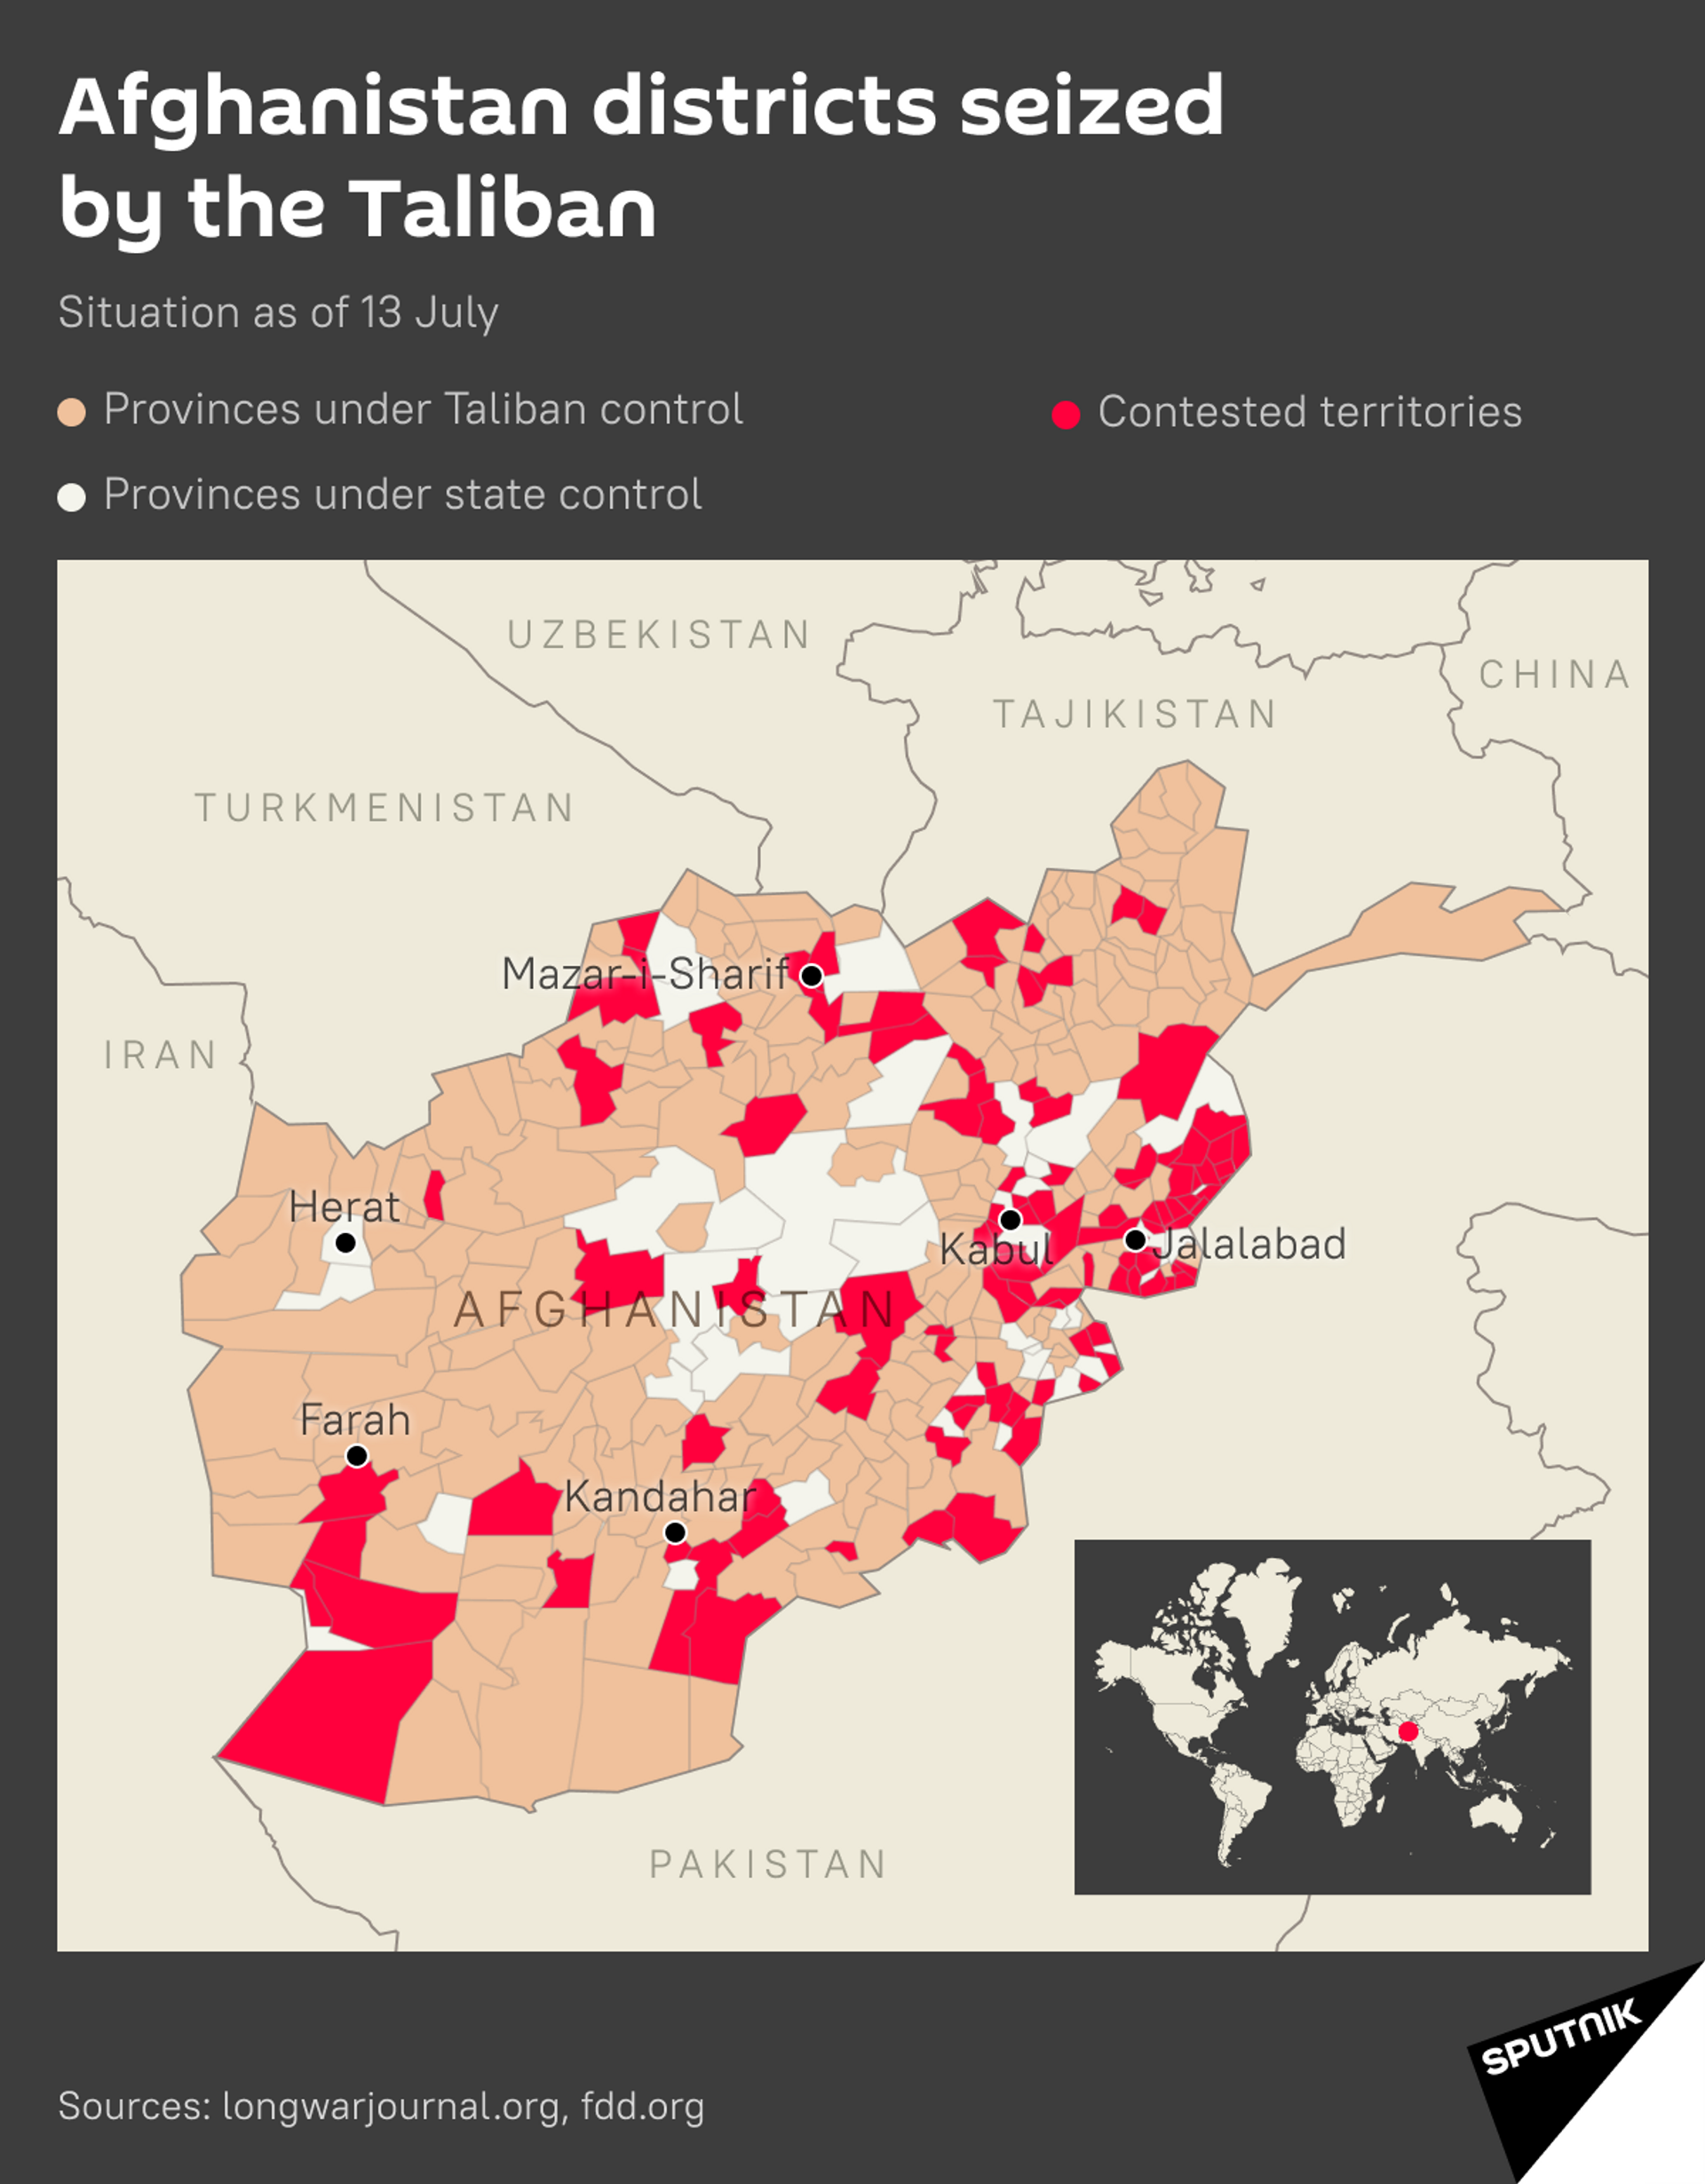 Afghan districts seized by the Taliban as of 13 July - Sputnik International, 1920, 07.09.2021